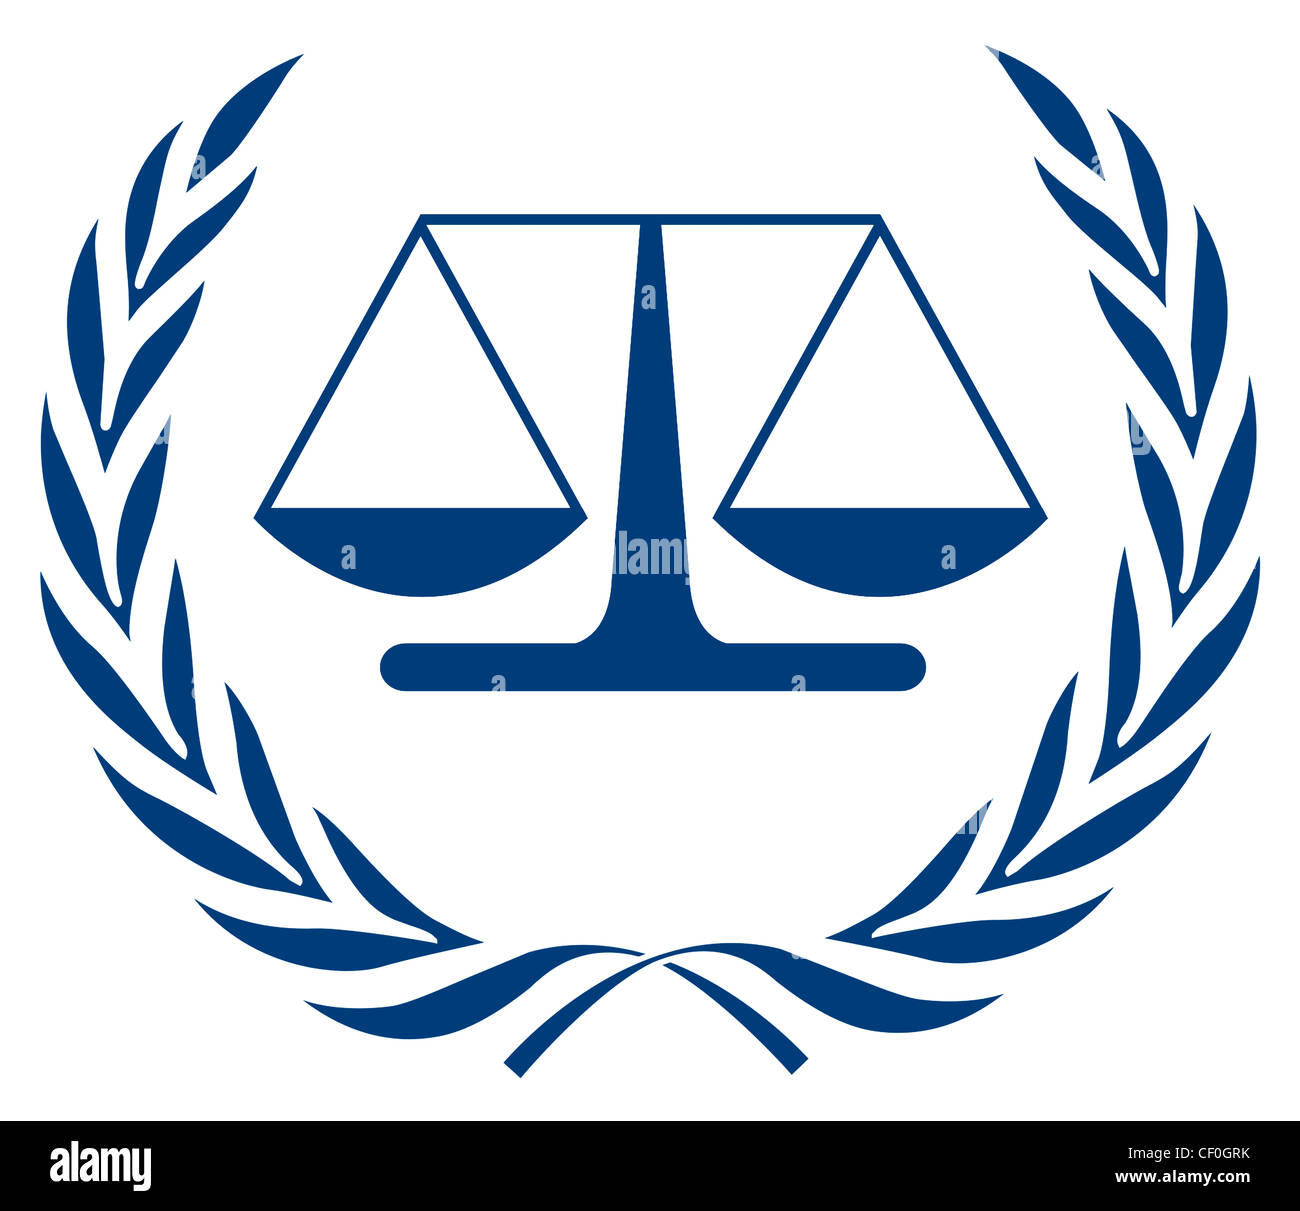 Logo of the International Criminal Court ICC with seat in The Hague. - Stock Image